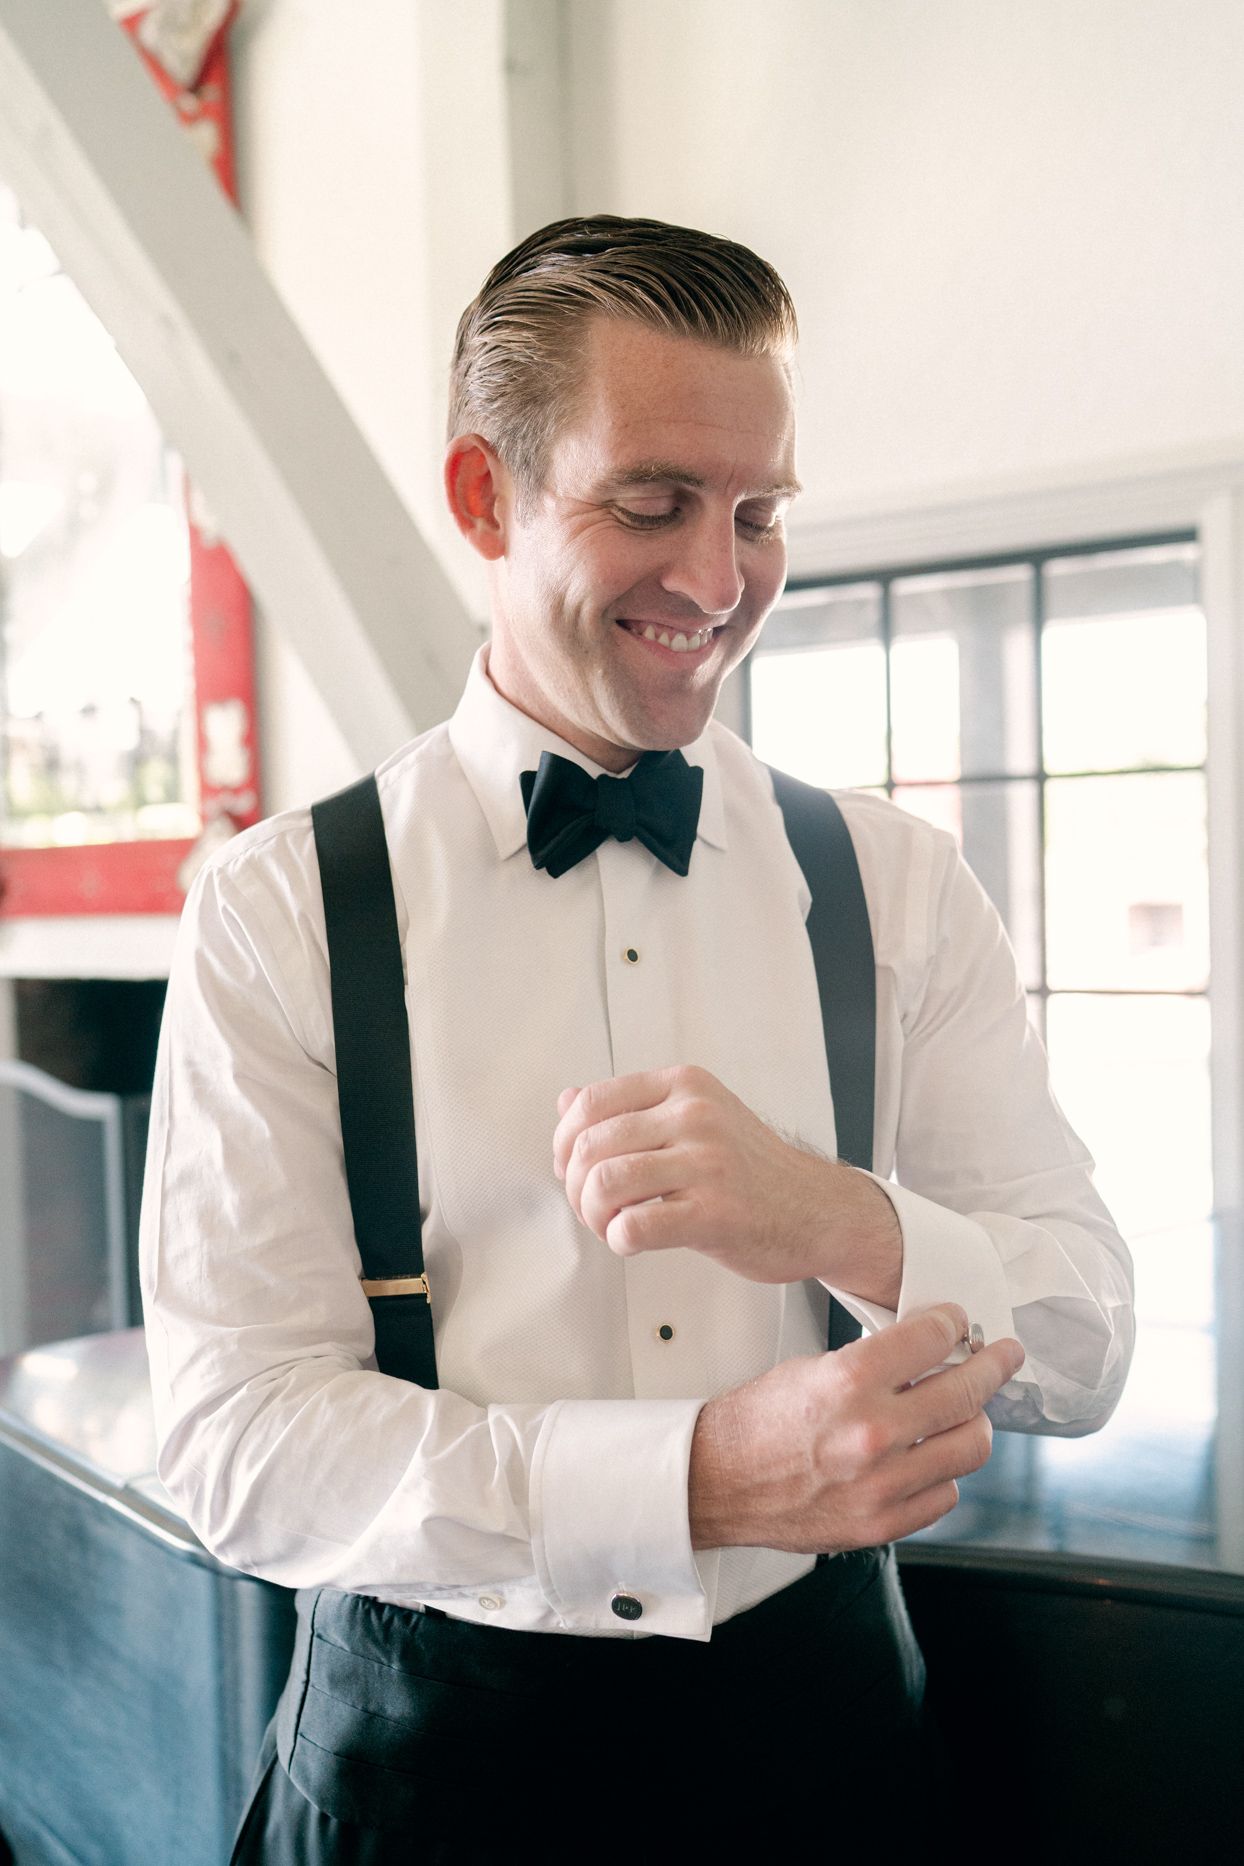 groom smiling wearing black and white suit with bowtie